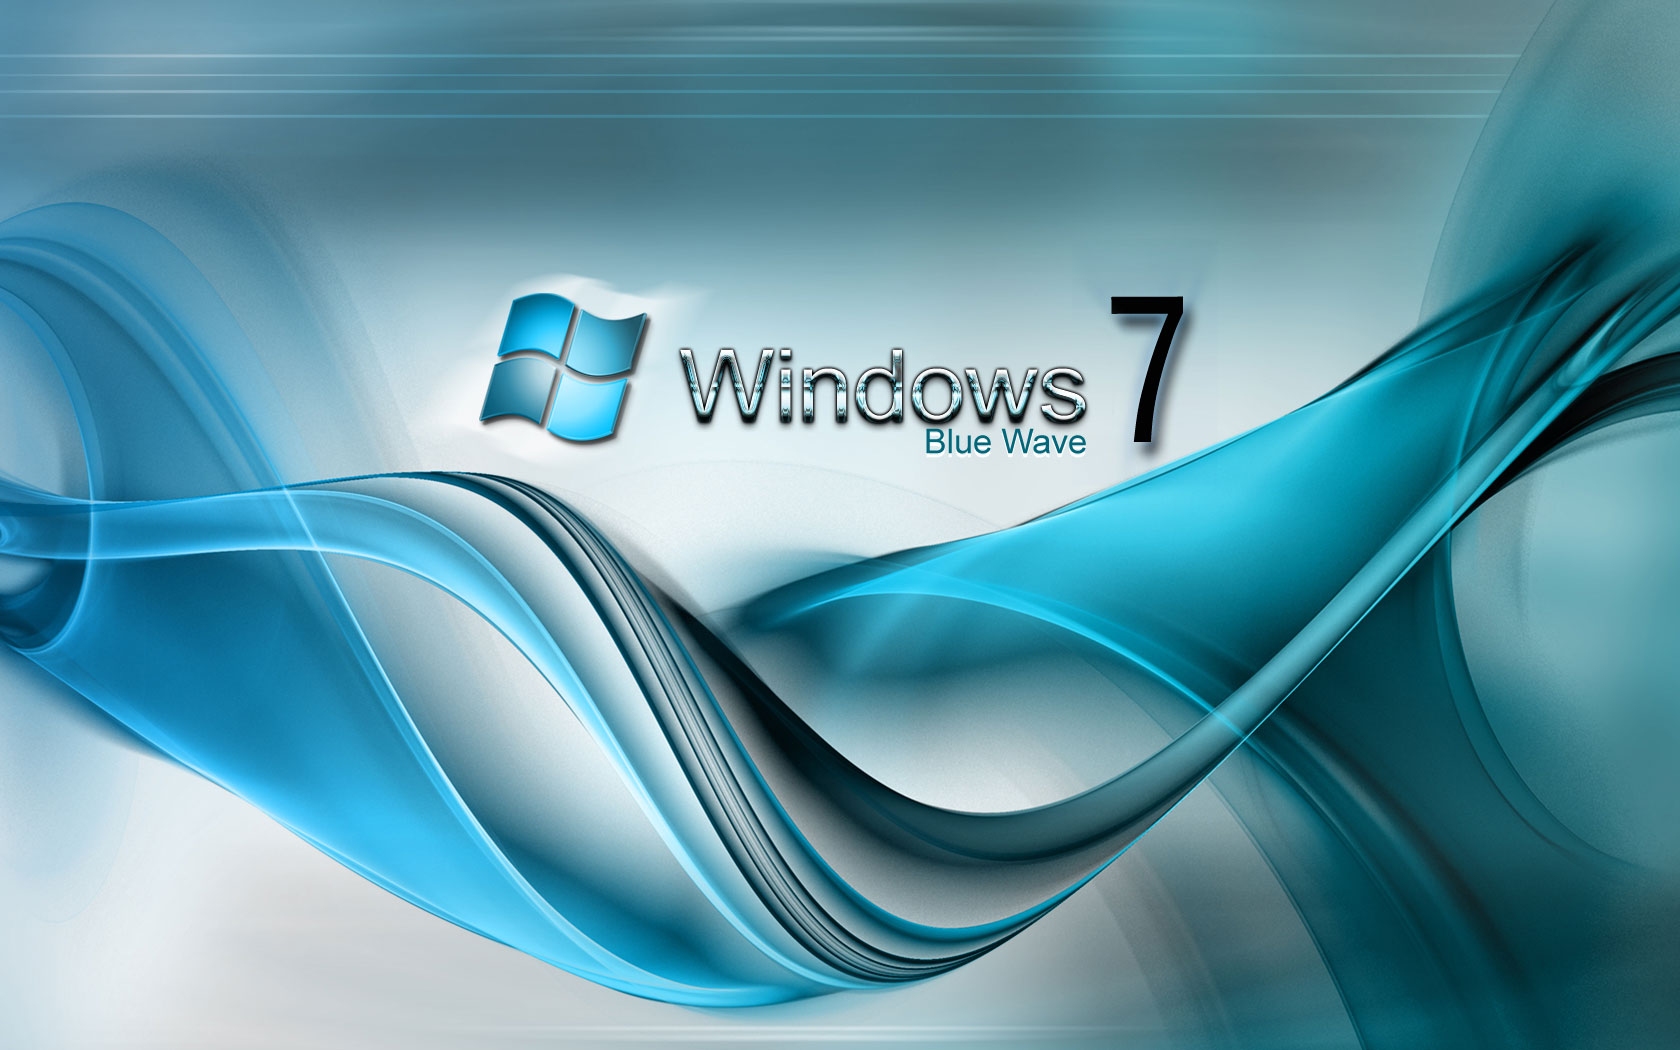 Window 7 Wallpaper Free Download Posted By John Anderson